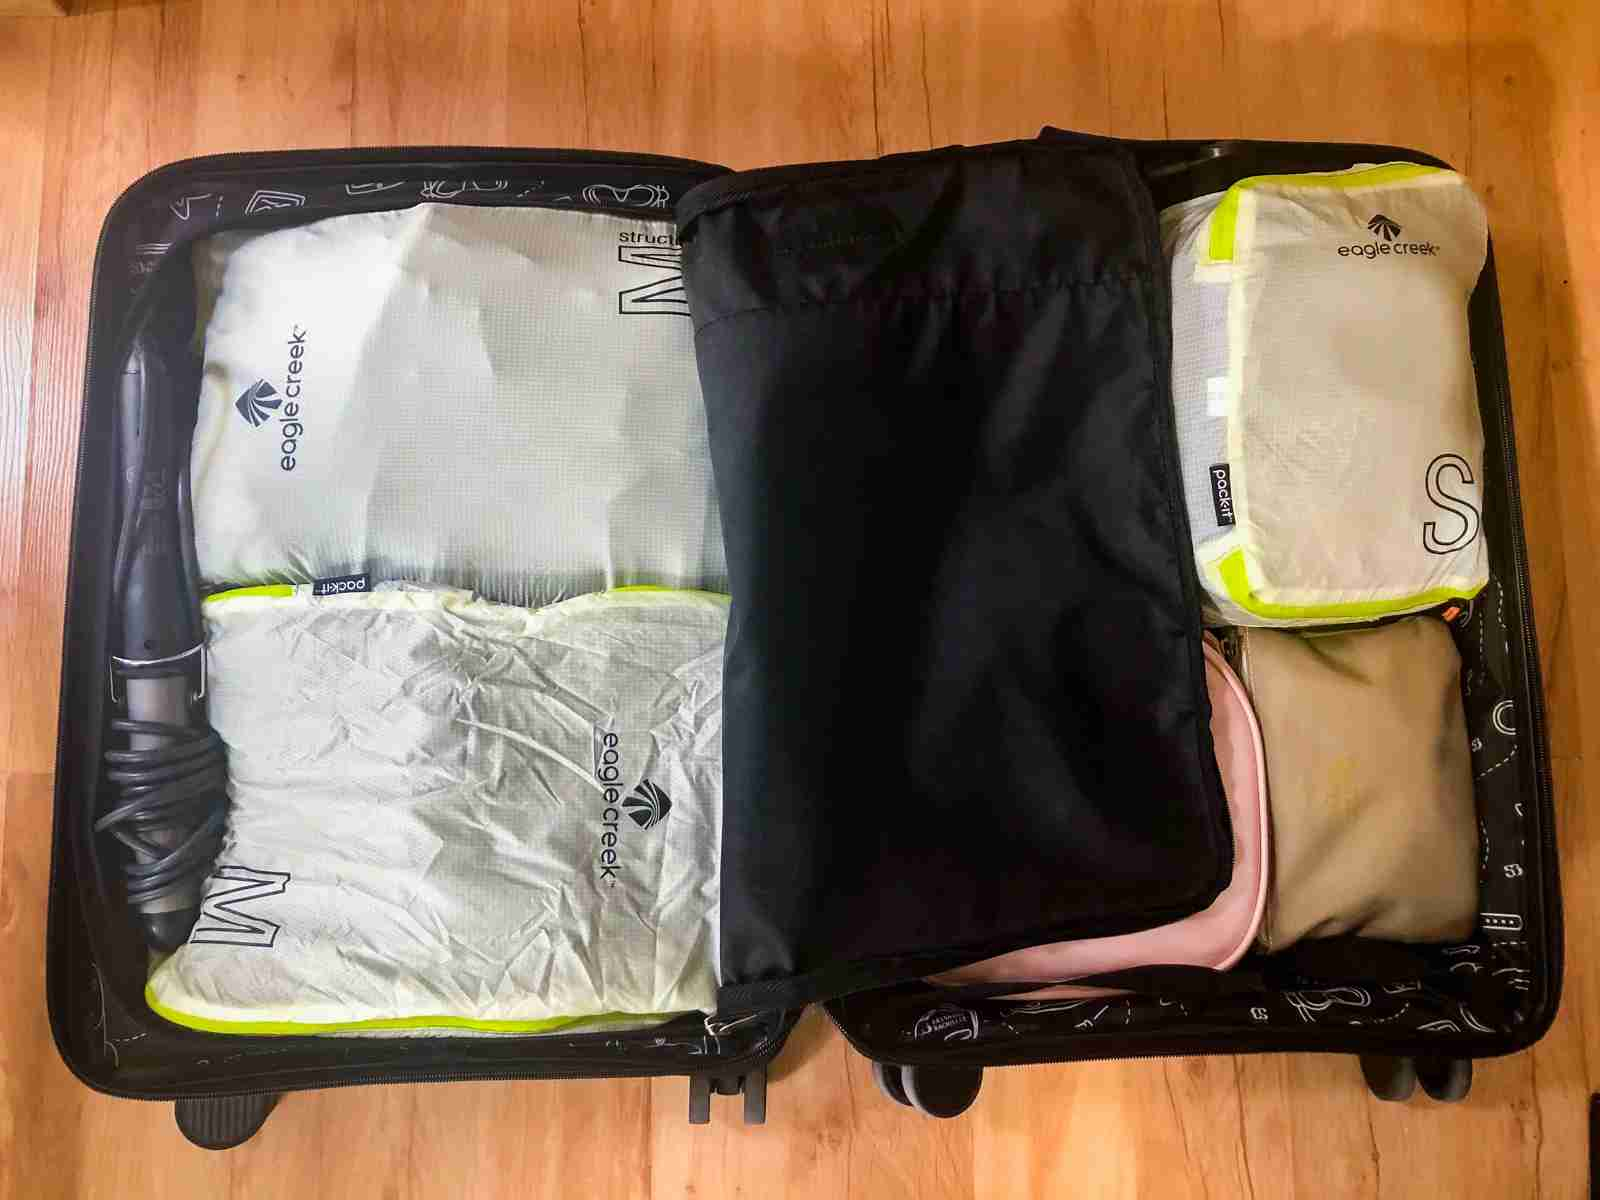 My suitcase stays organized with packing cubes. (Photo by Lori Zaino/The Points Guy)